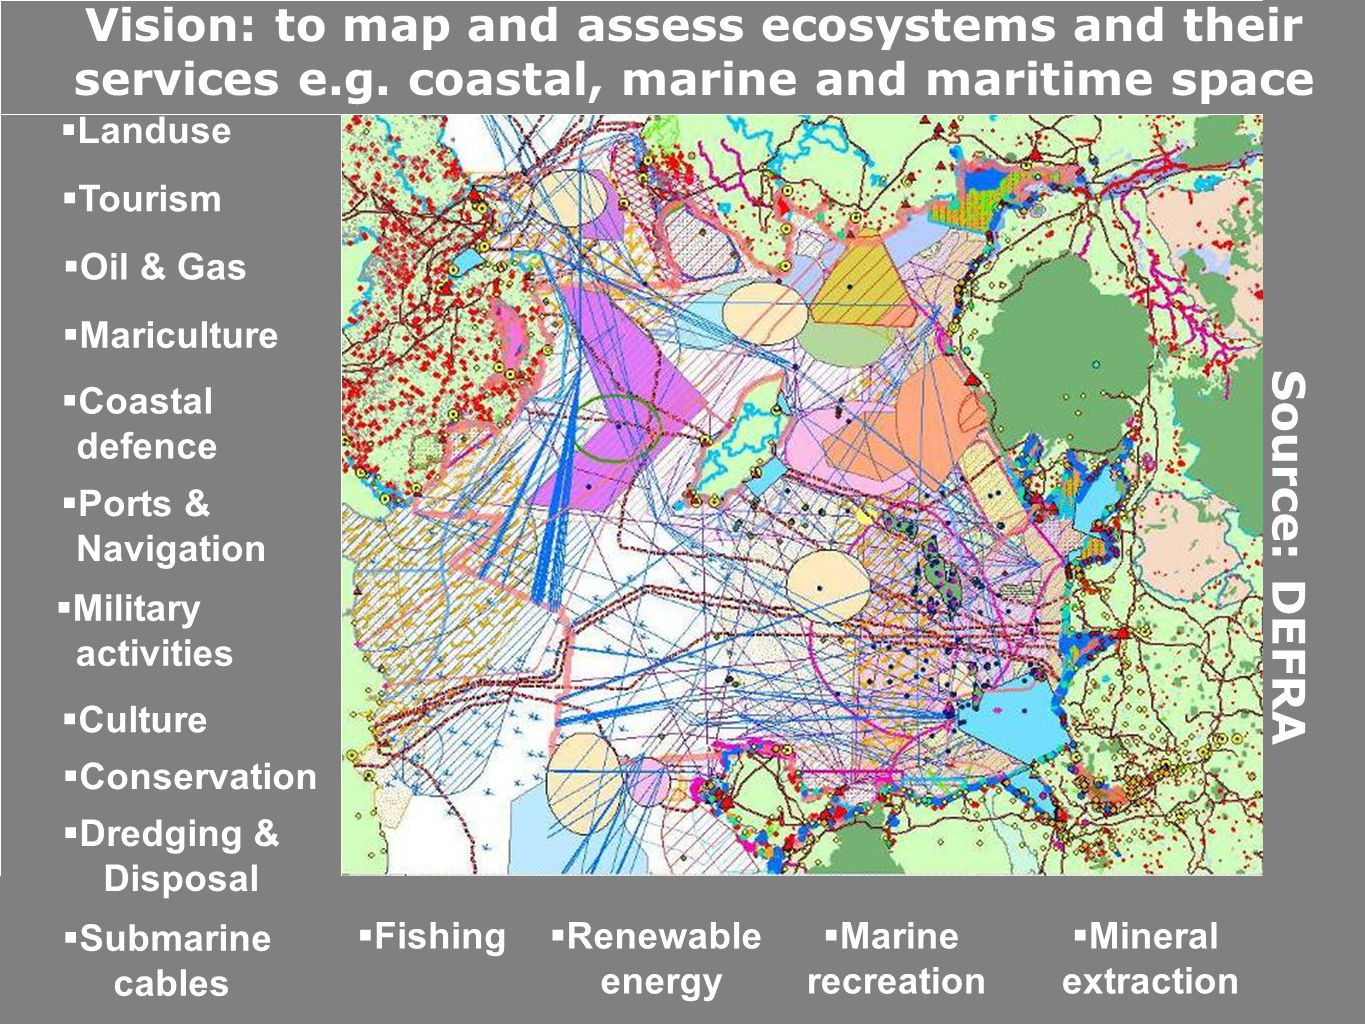 MAES Analytical Framework http://ec.europa.eu/environment/nature/knowledge/ecosystem_assessment/pdf/MAESWorkingPaper2013.pdf